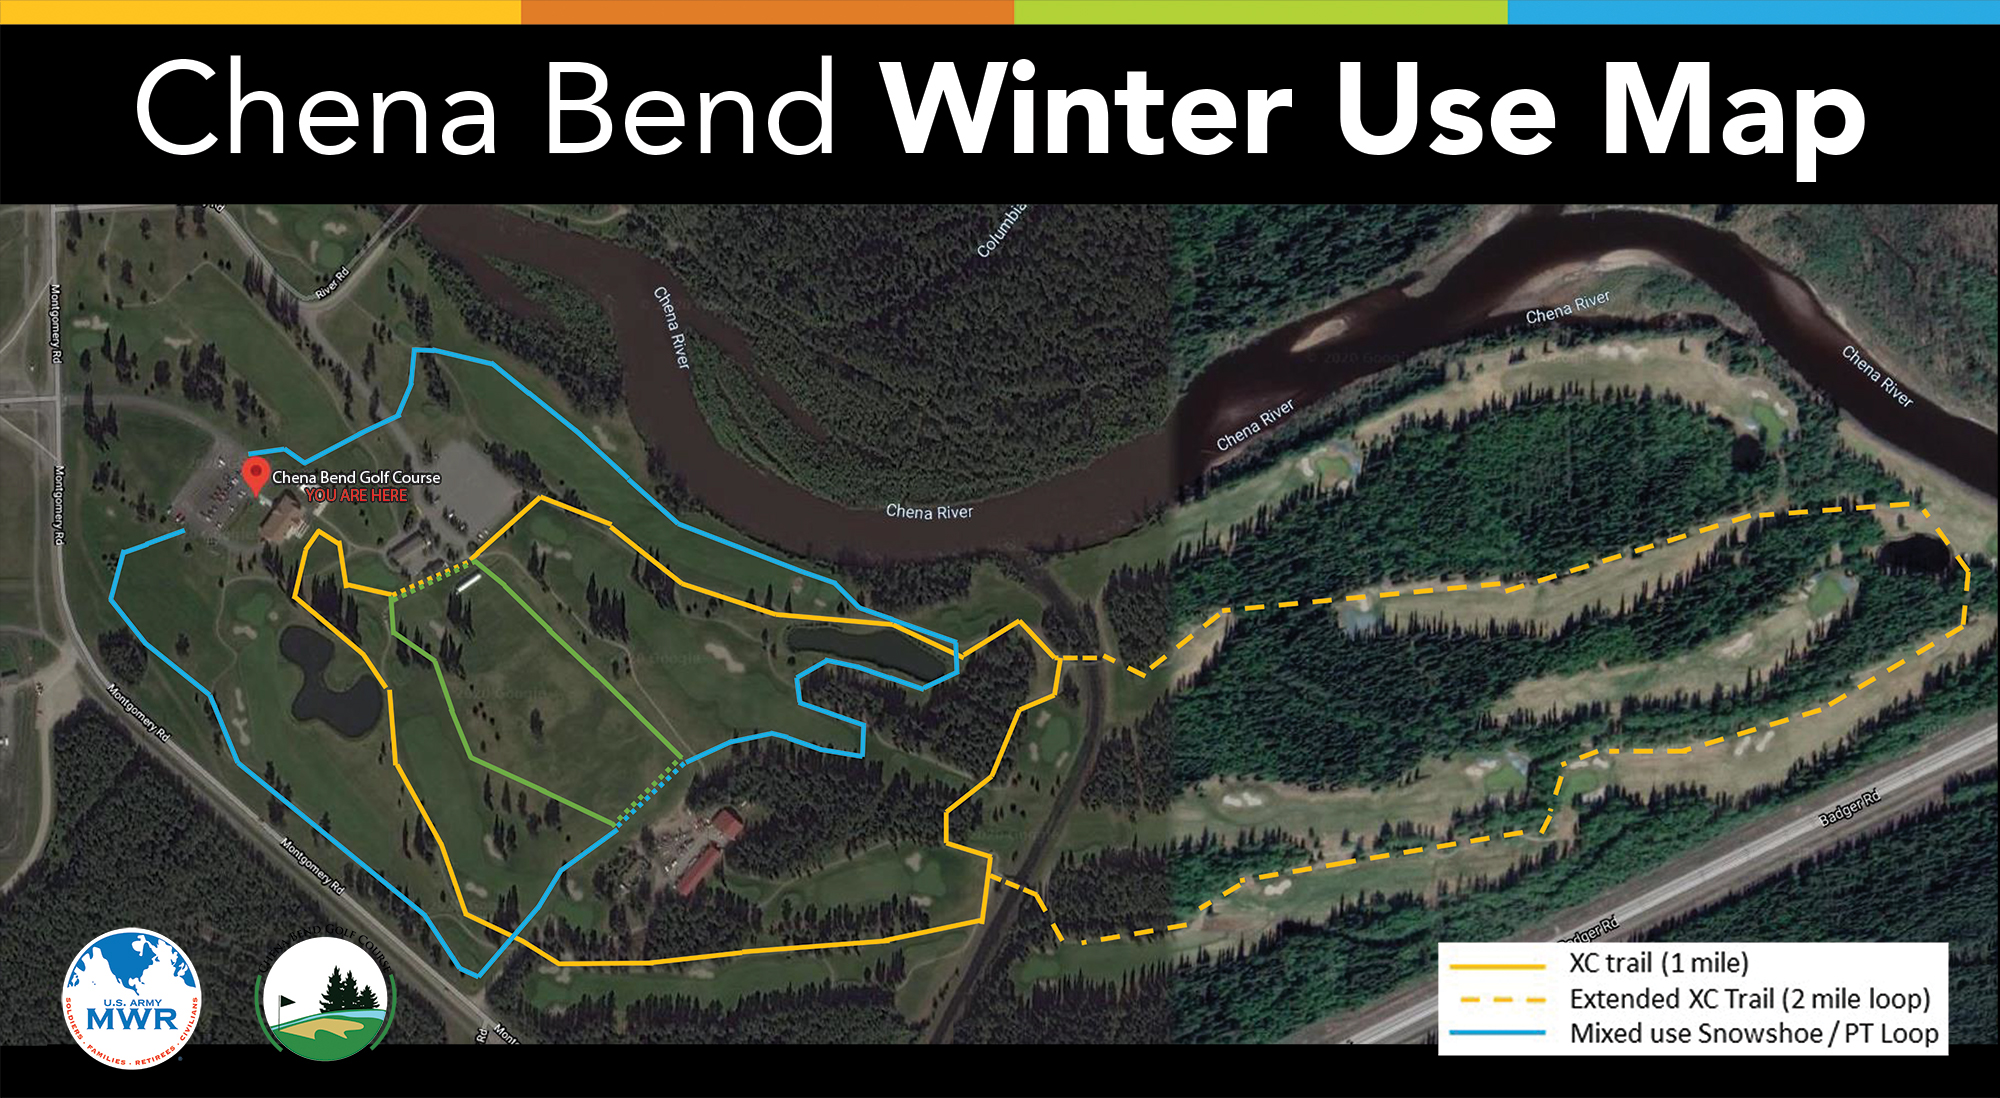 Chena Bend Winter Trails Map_25x14_11162020.jpg